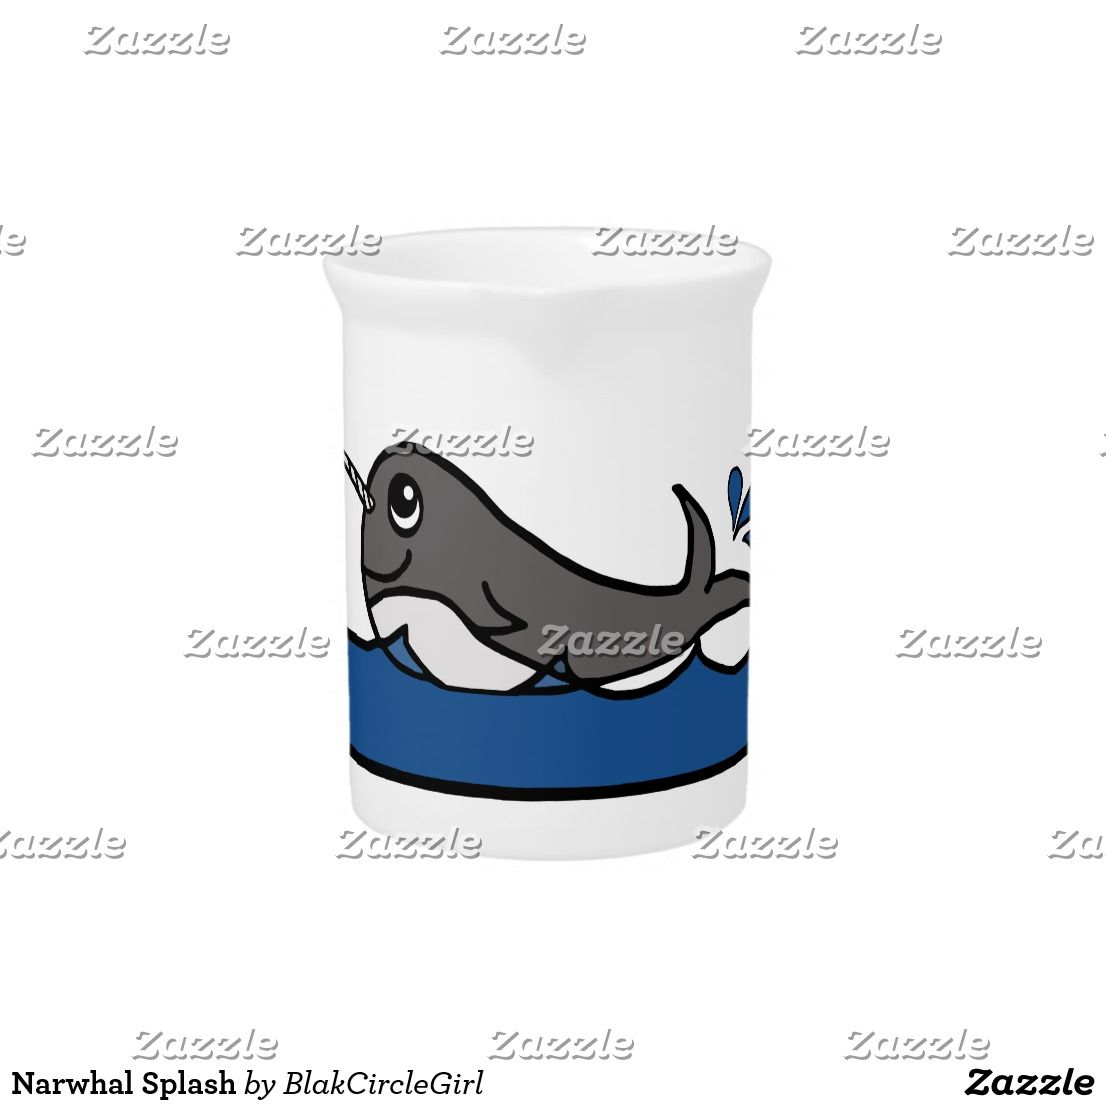 Narwhal Splash Drink Pitcher Zazzle UKHashtags Bizitalk ATSocialMedia